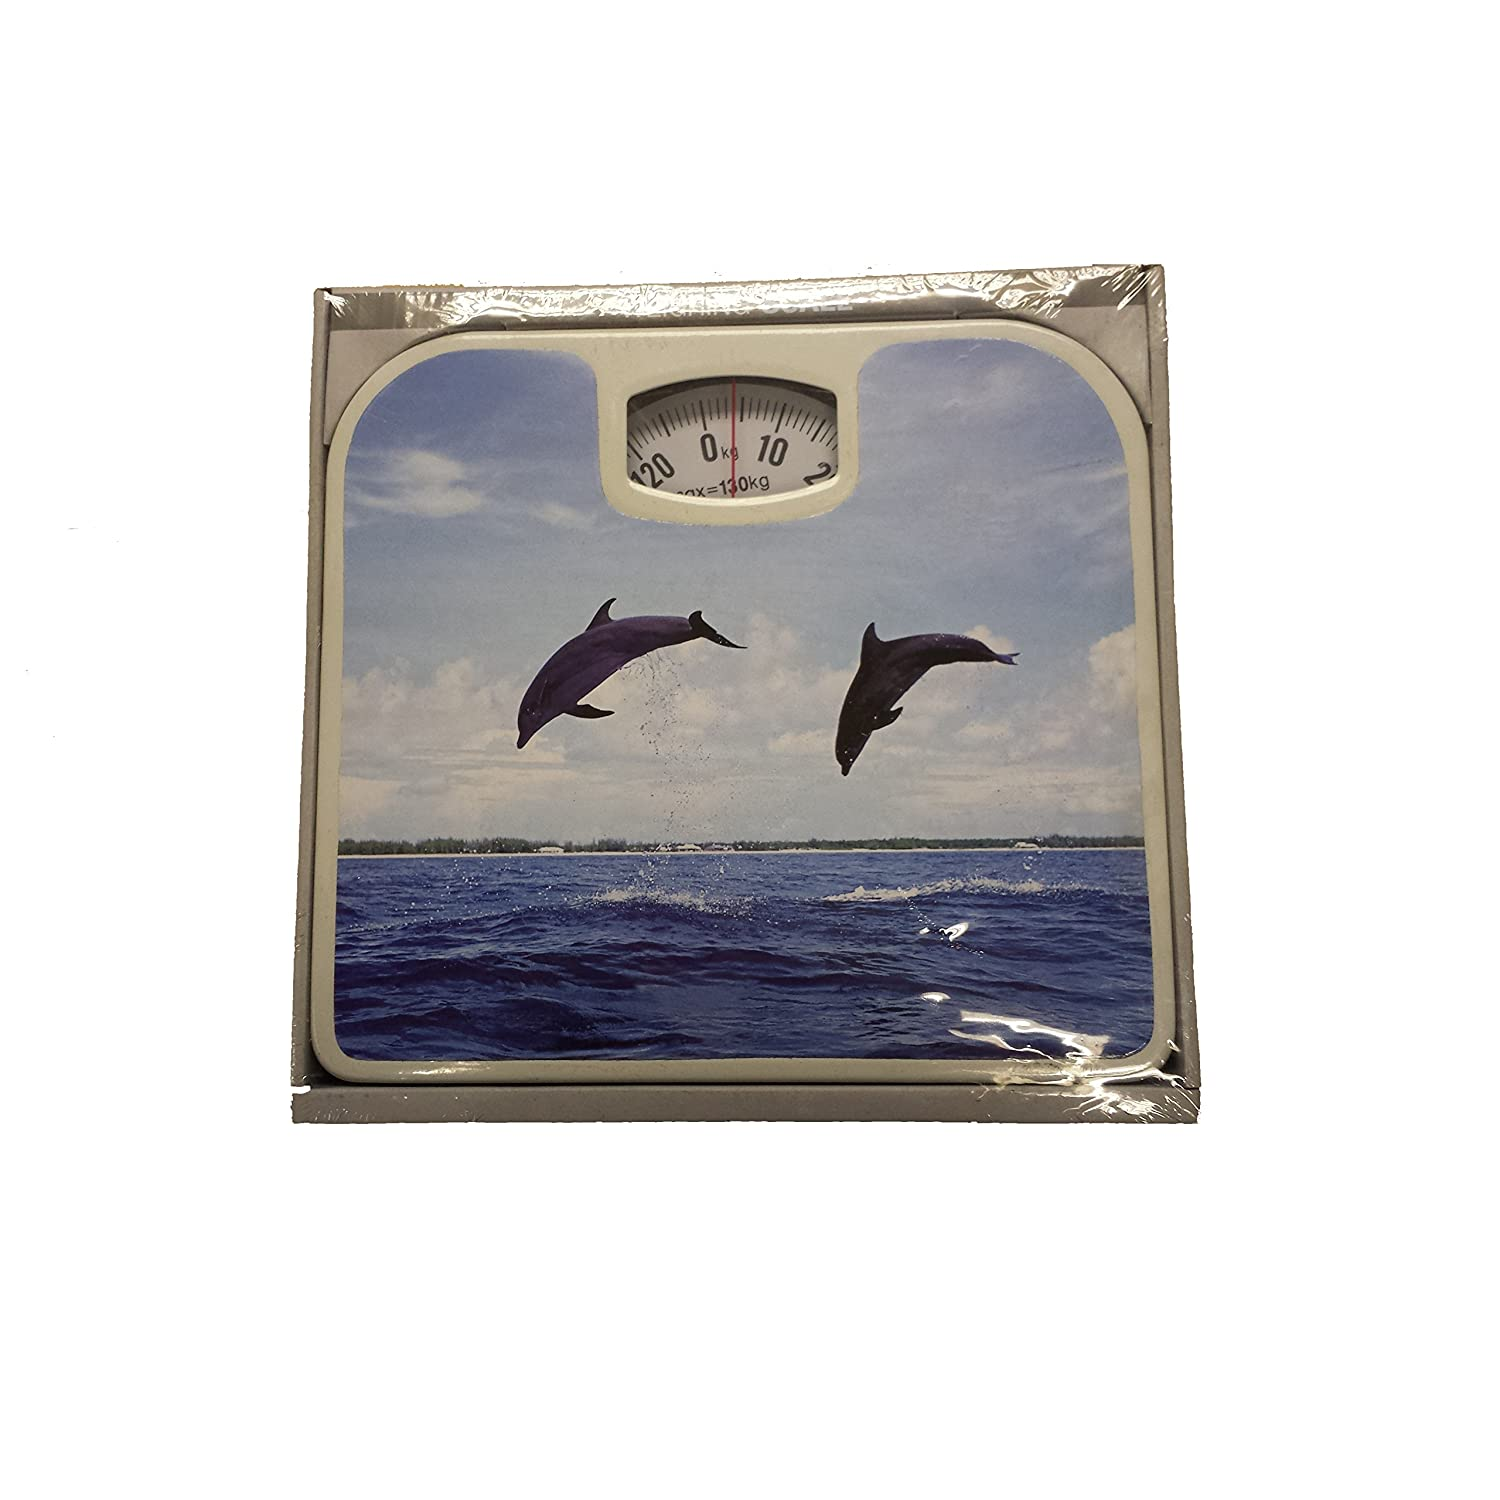 Dolphin at Sea Design Weighing Bathroom Scale 130kg Max Capacity Knight